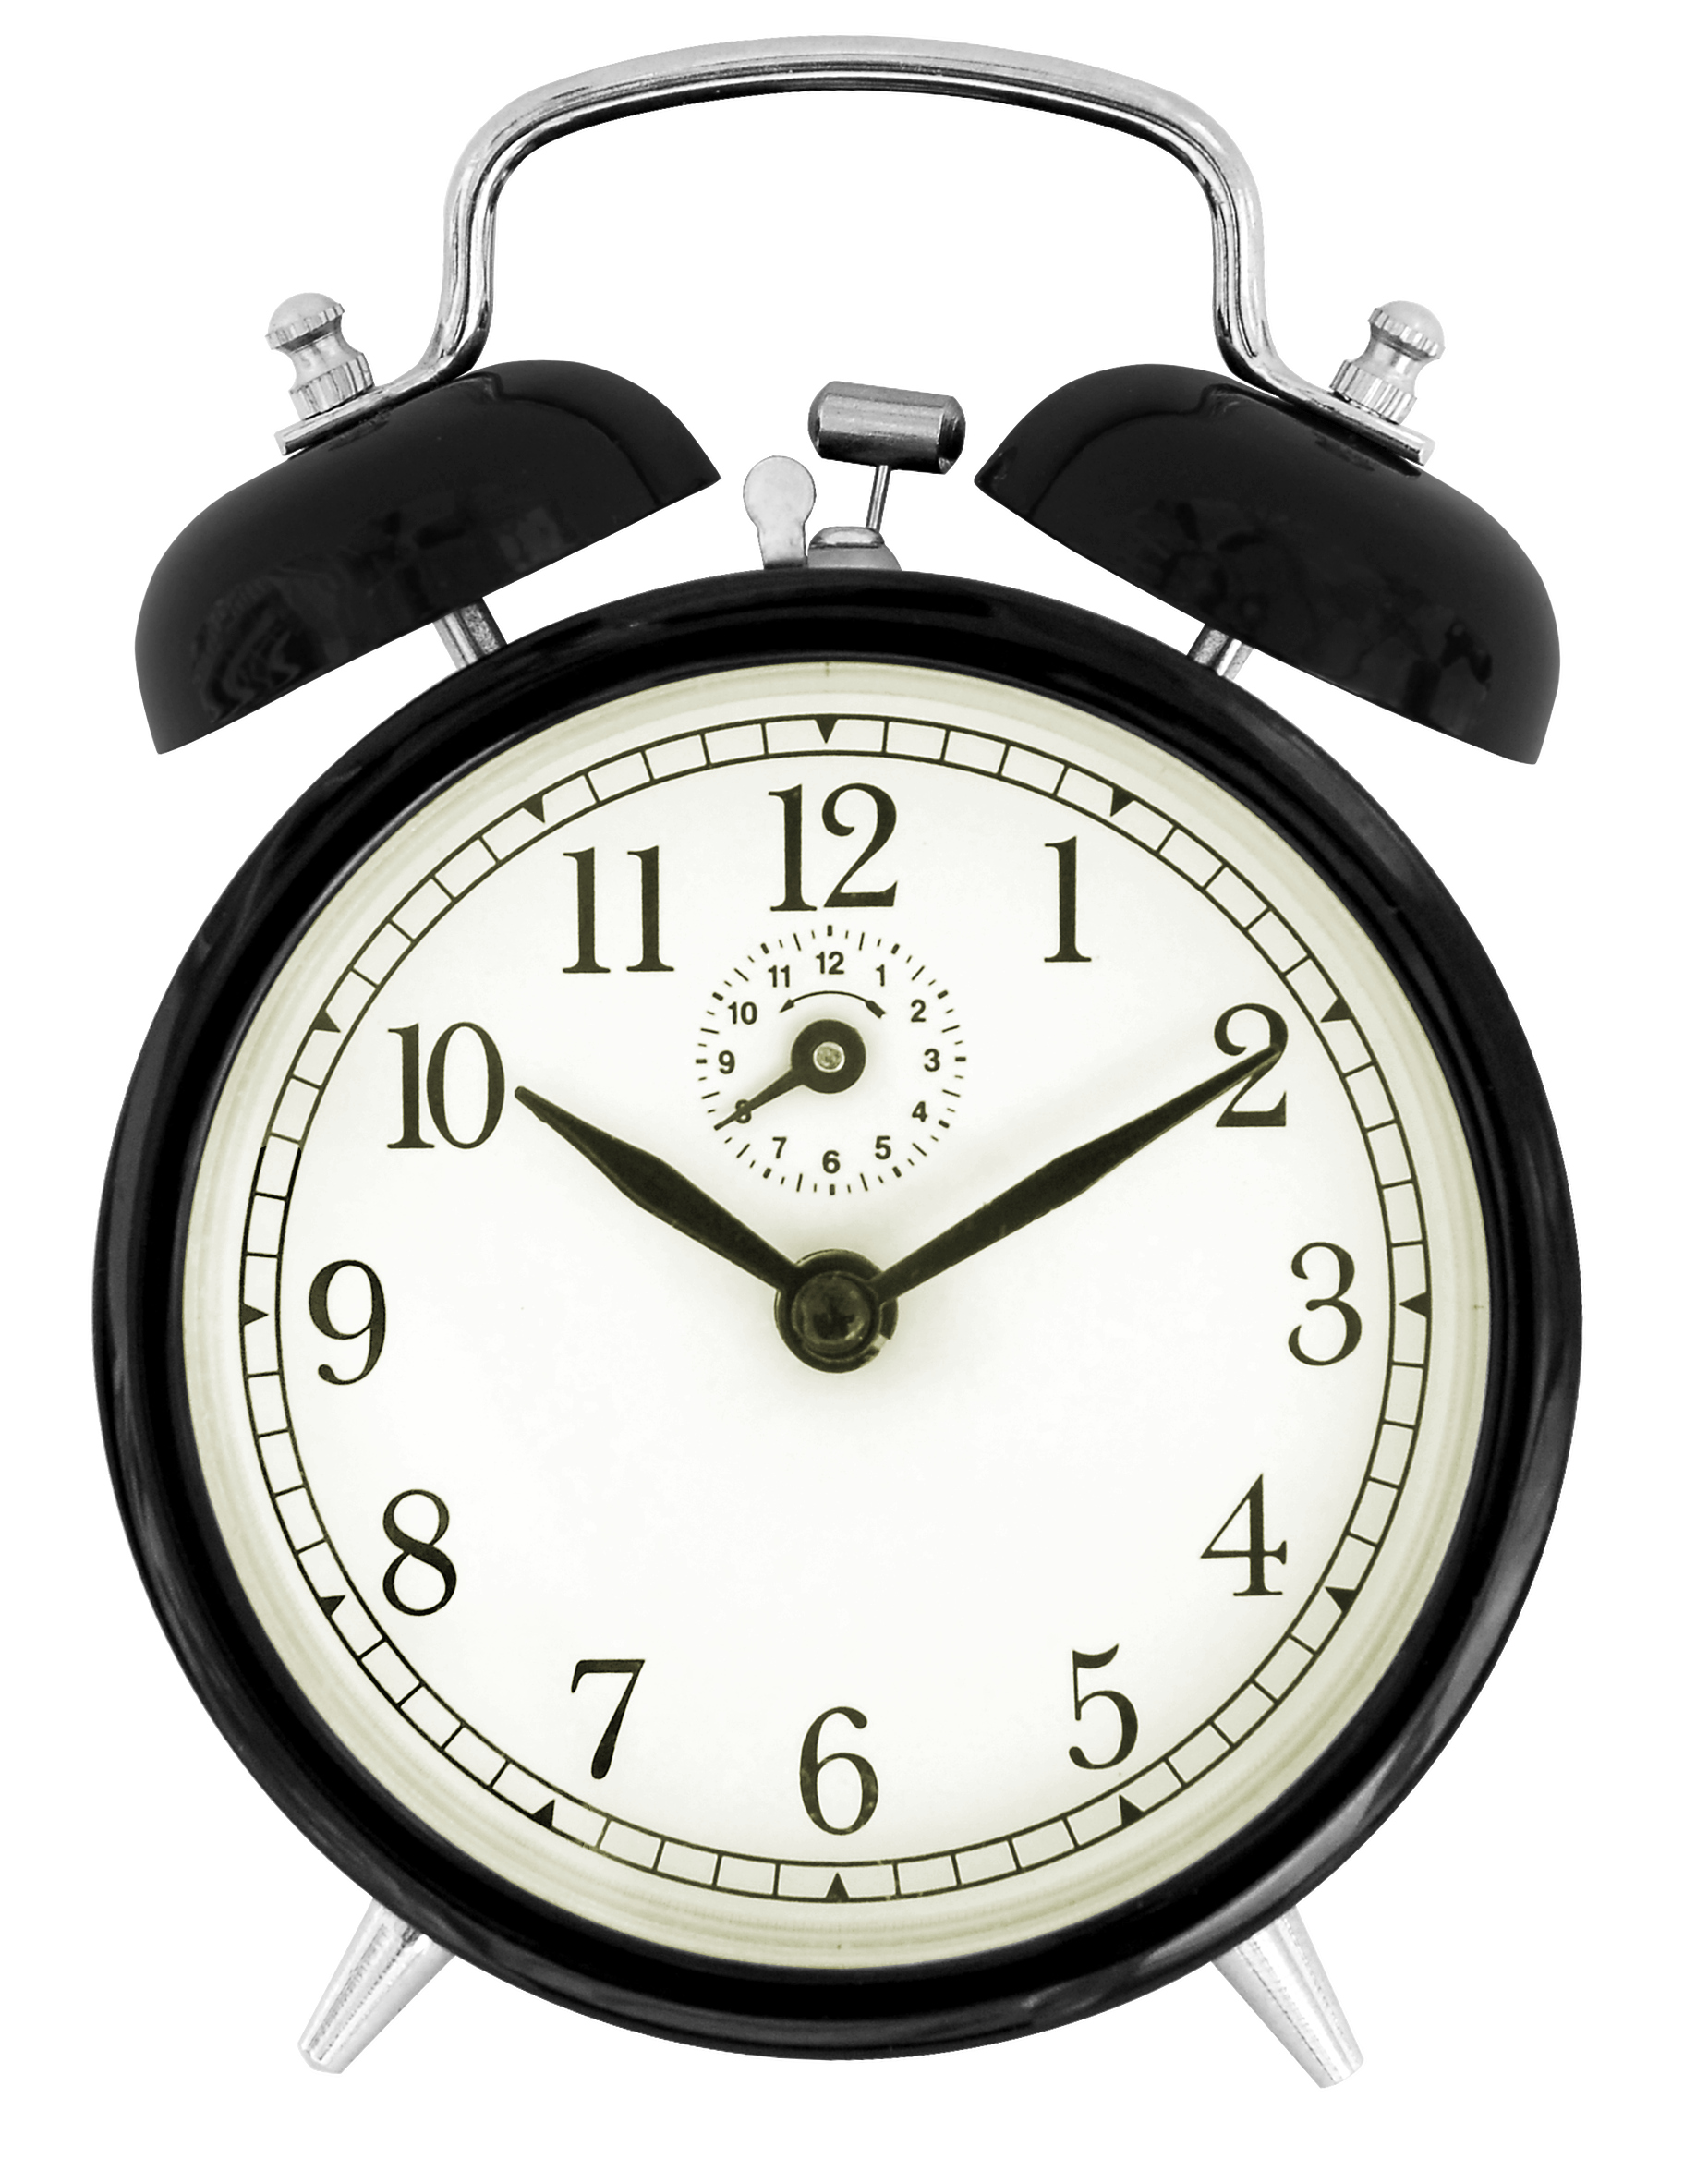 http://upload.wikimedia.org/wikipedia/commons/8/8b/2010-07-20_Black_windup_alarm_clock_face.jpg